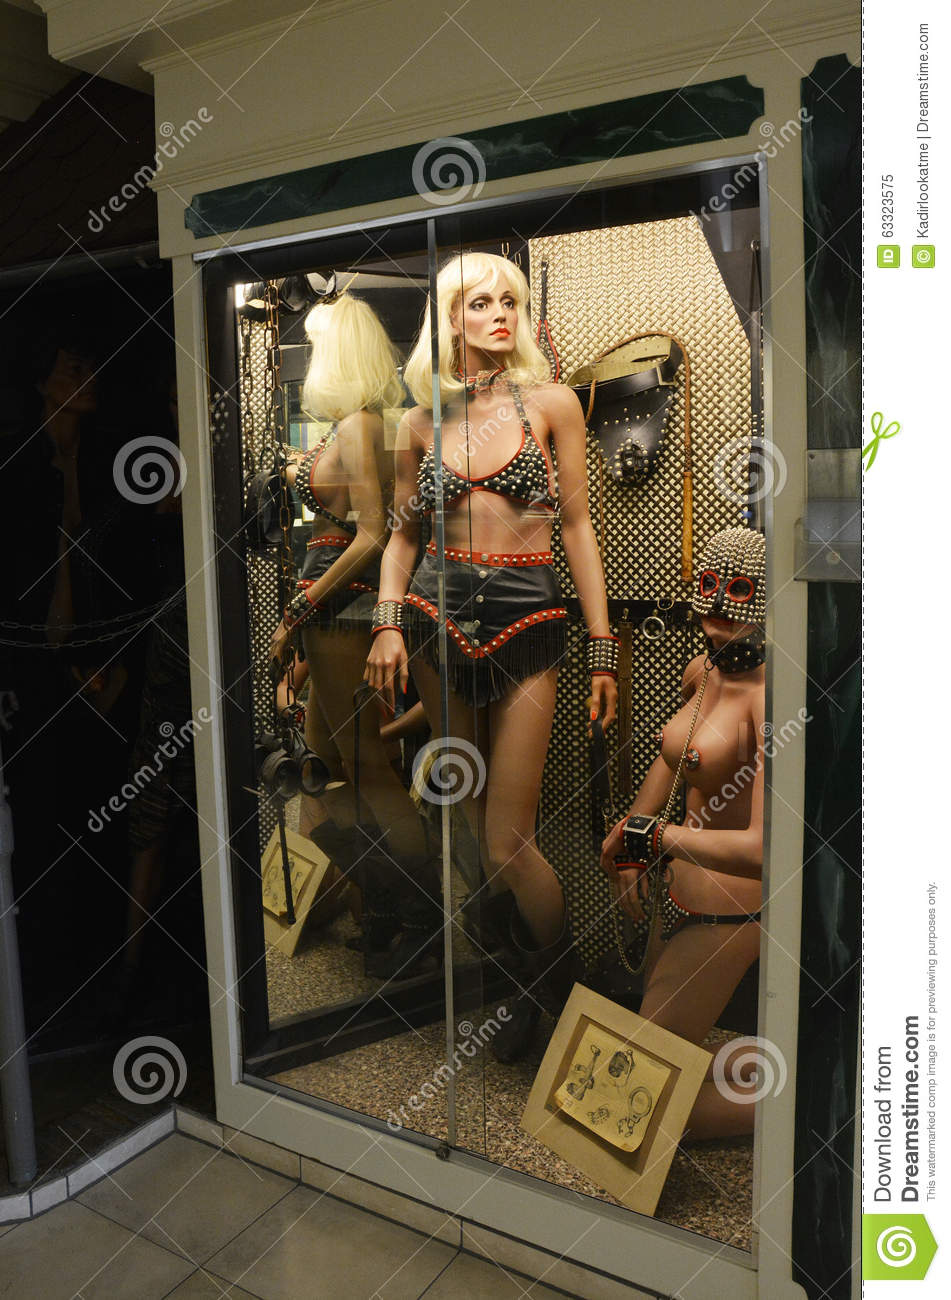 Pictures of sex museum remarkable